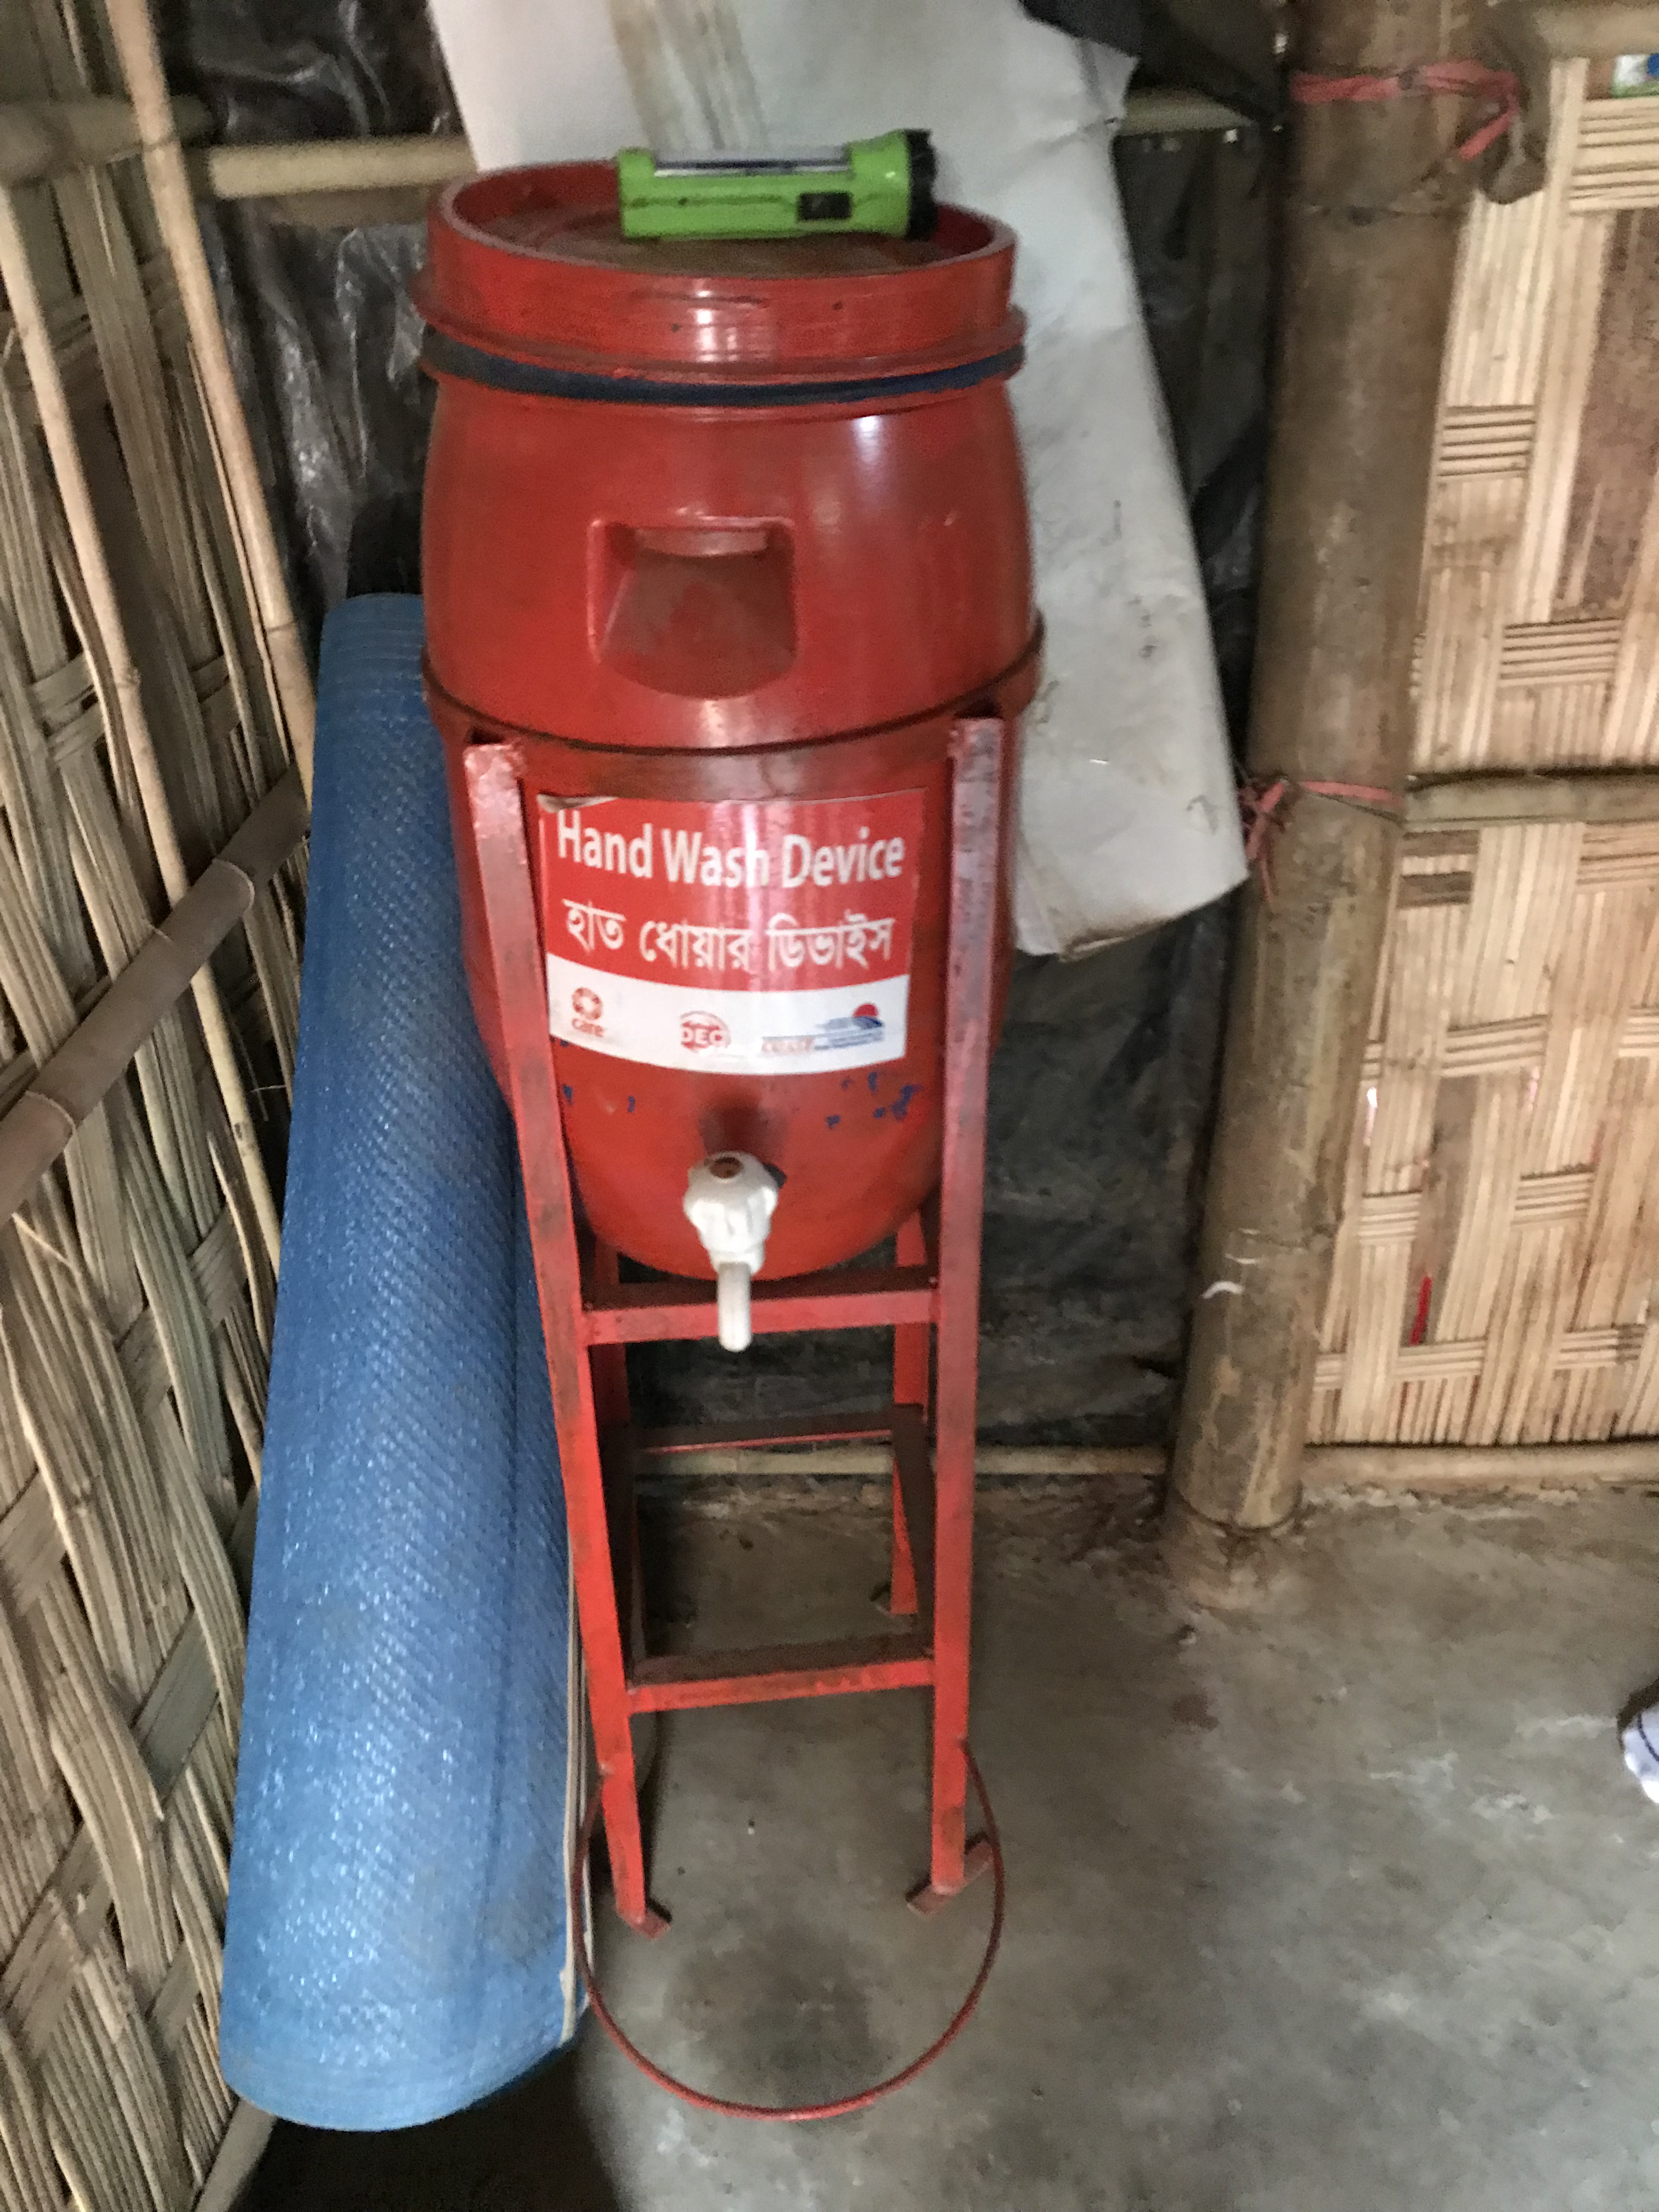 Portable water systems are provided to encourage better hygiene practices.